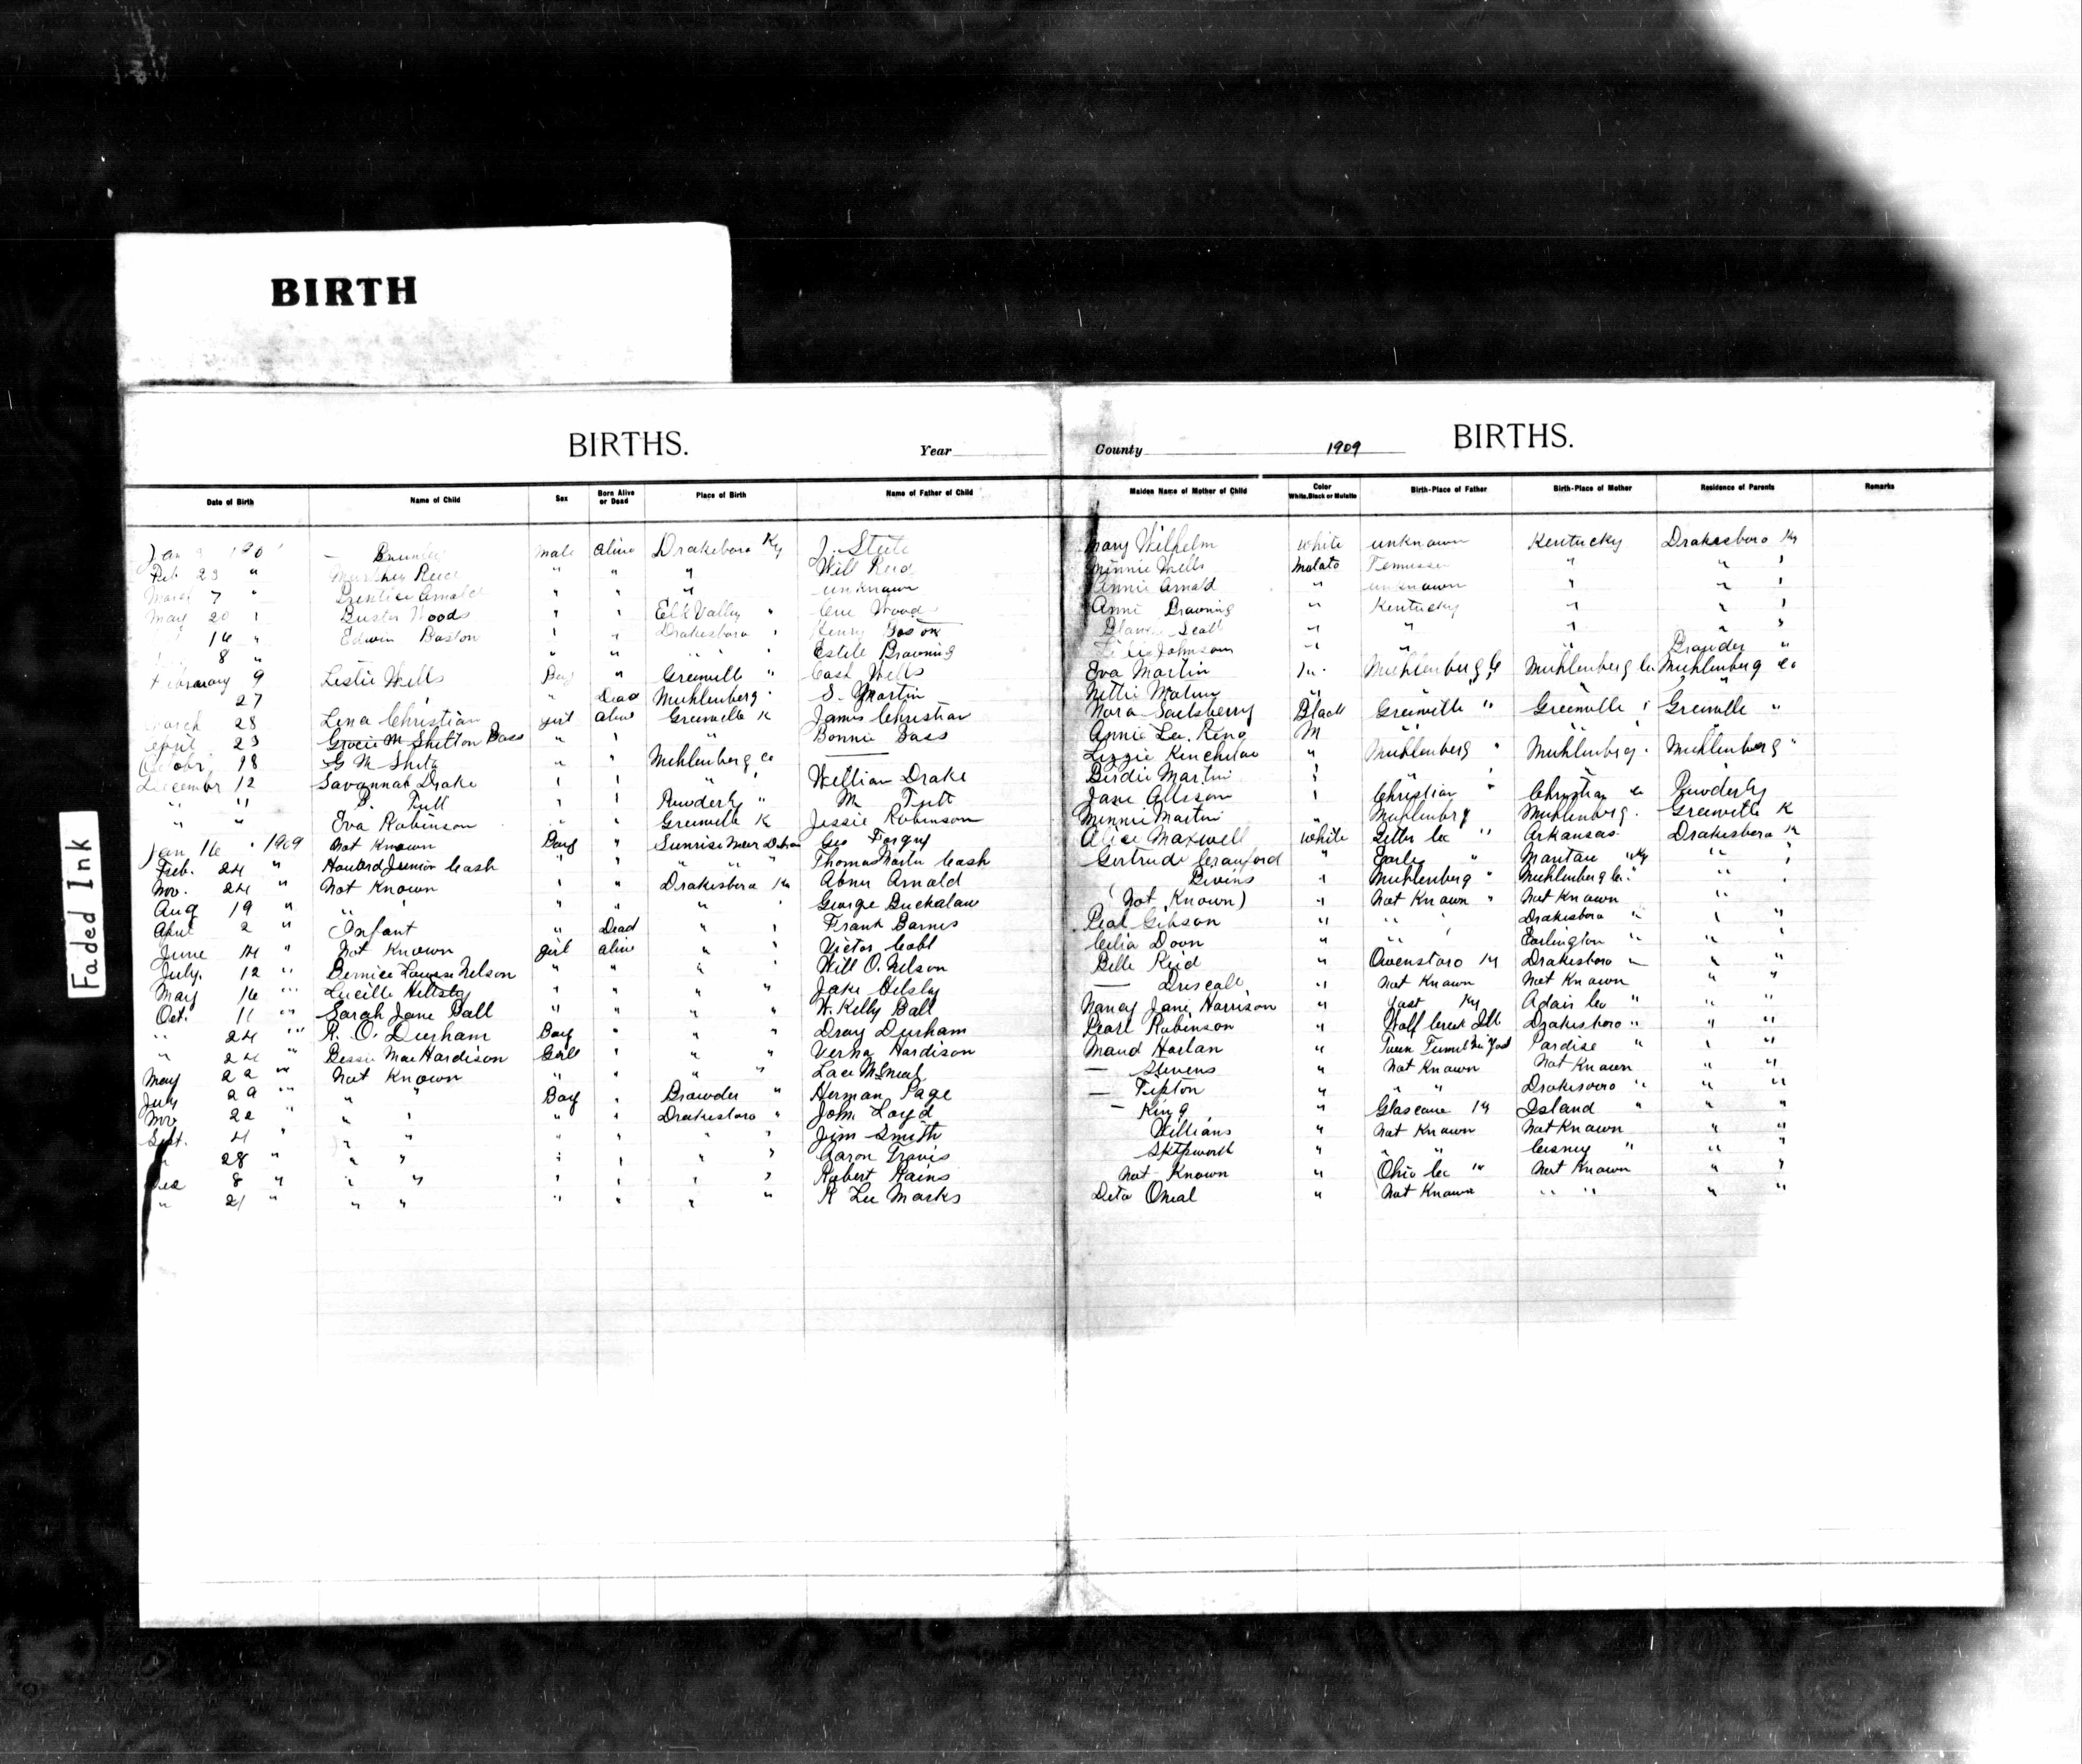 Kentucky Divorce Records: Birth Records 1909